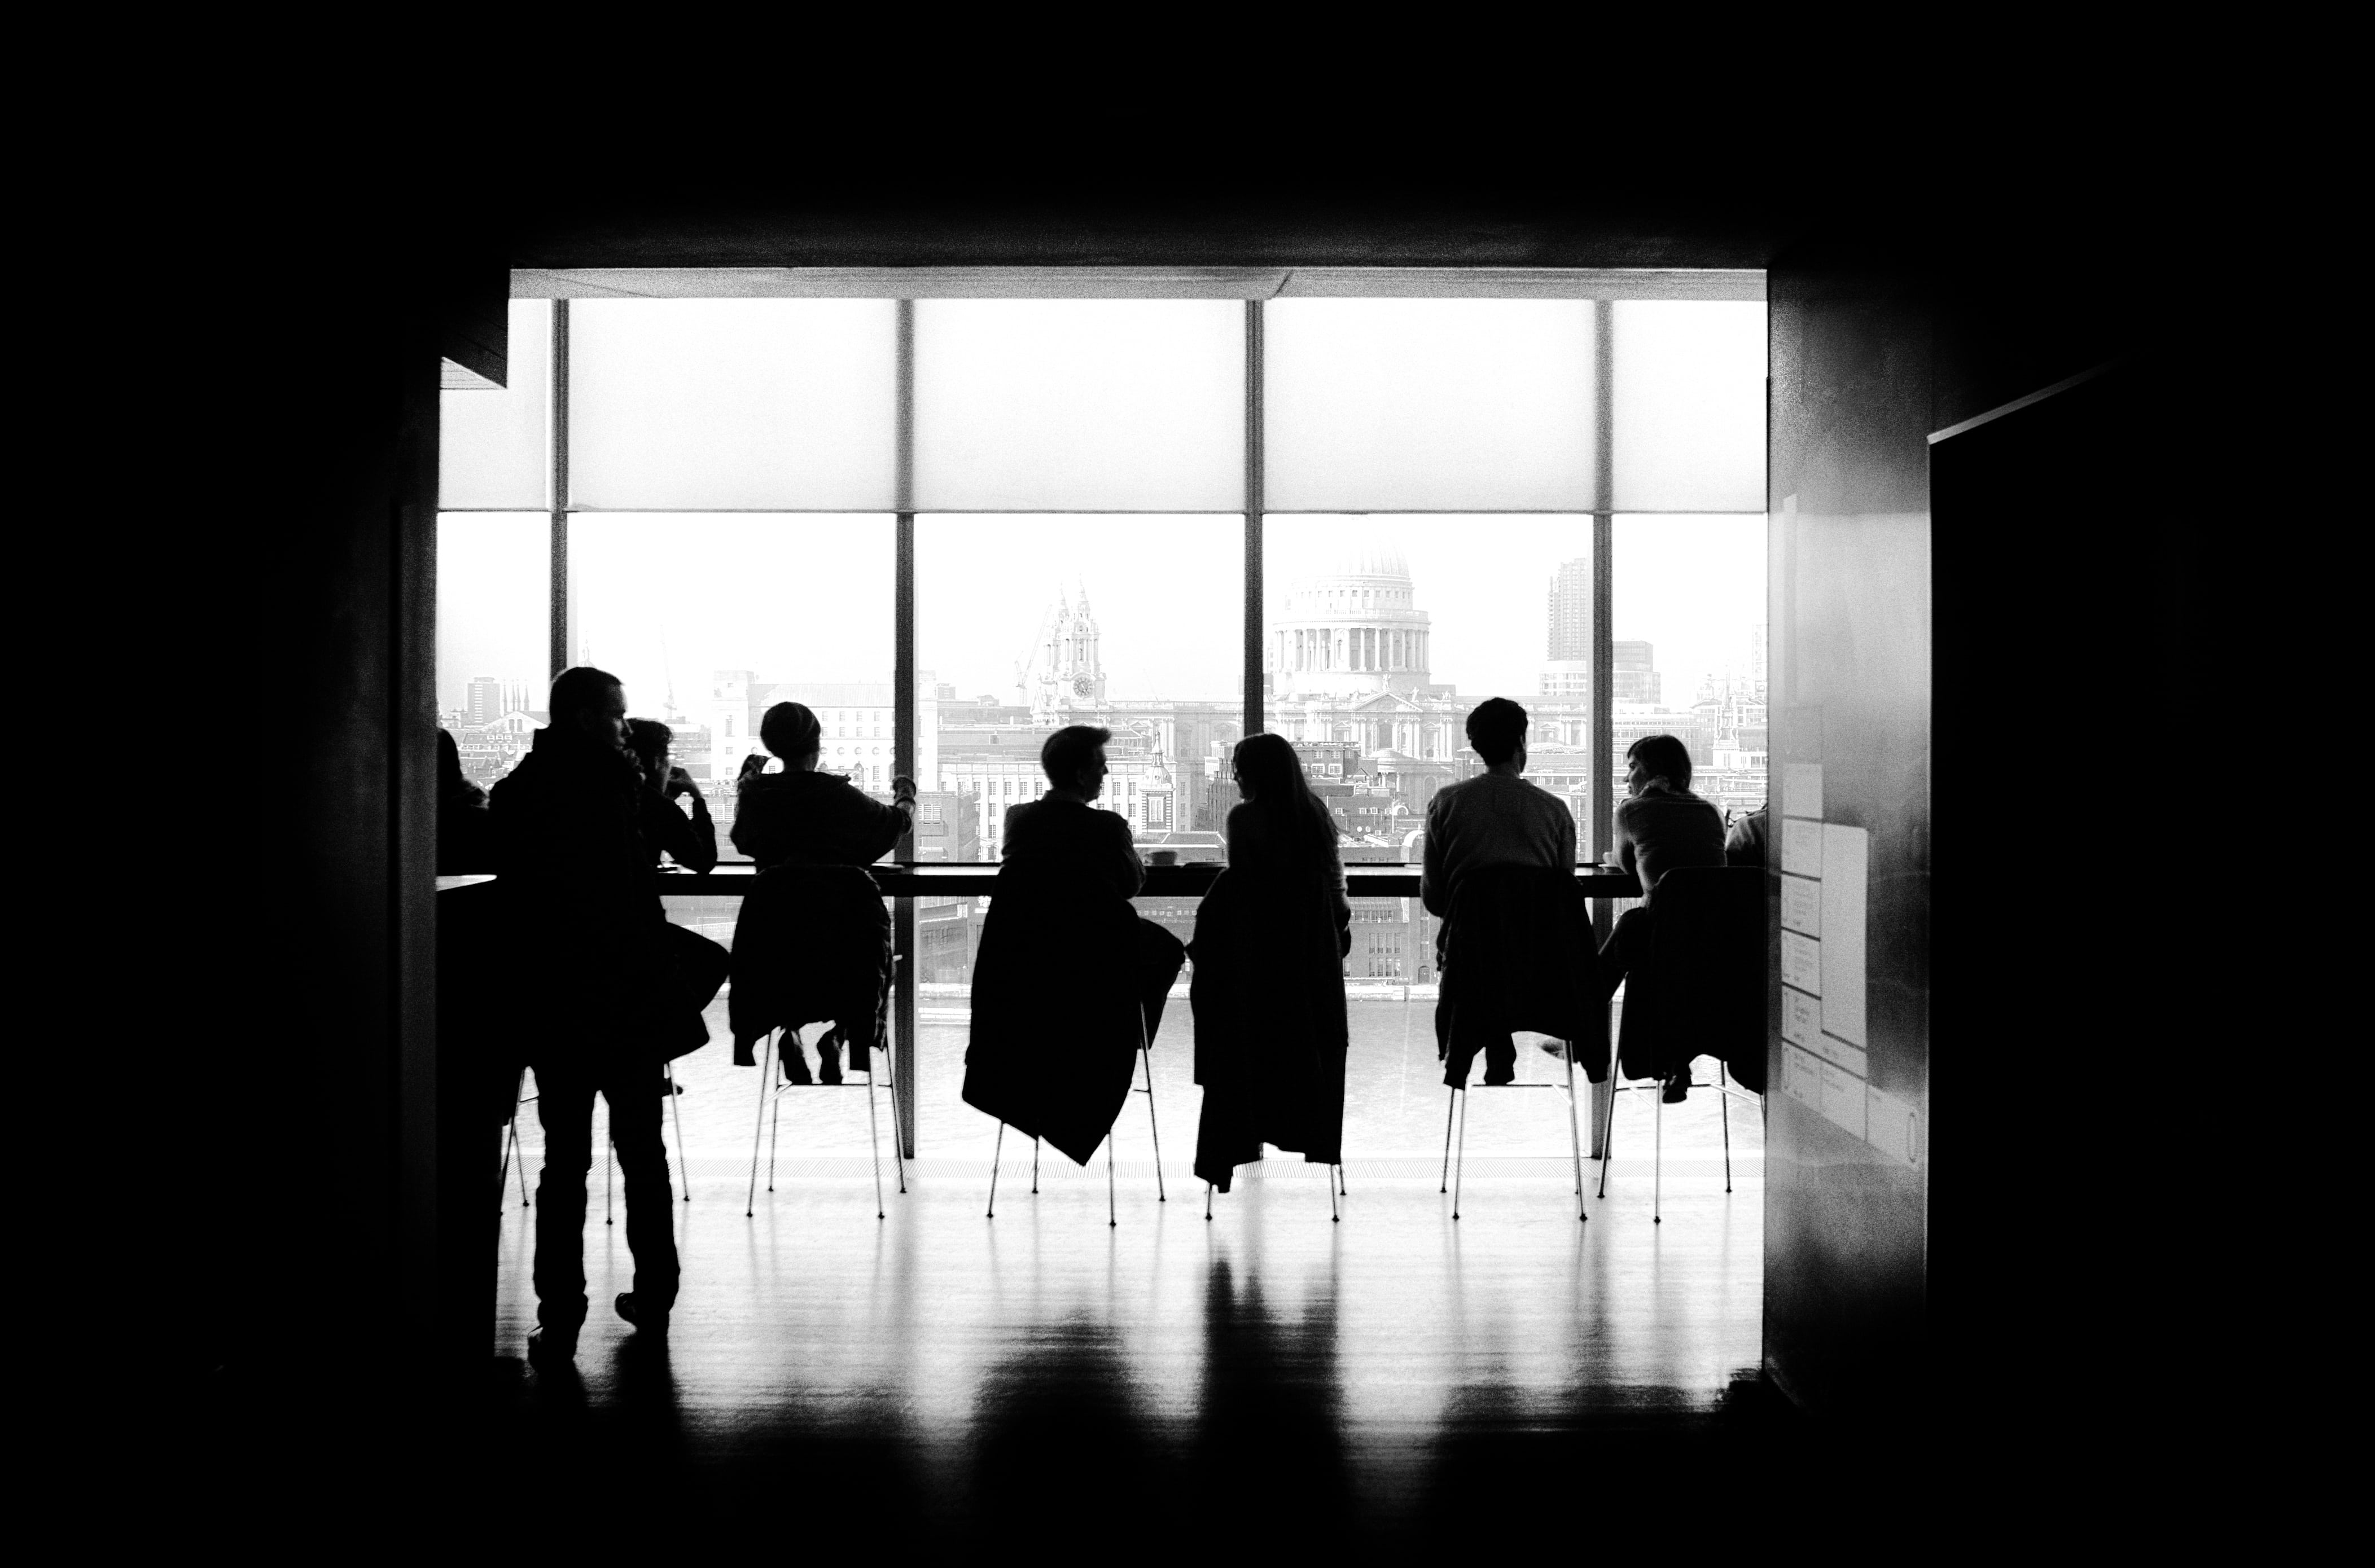 A black and white photo of people sat in a conference room. Only their silhouettes are visible. It is several floors up and Saint Paul's cathedral is visible outside the window